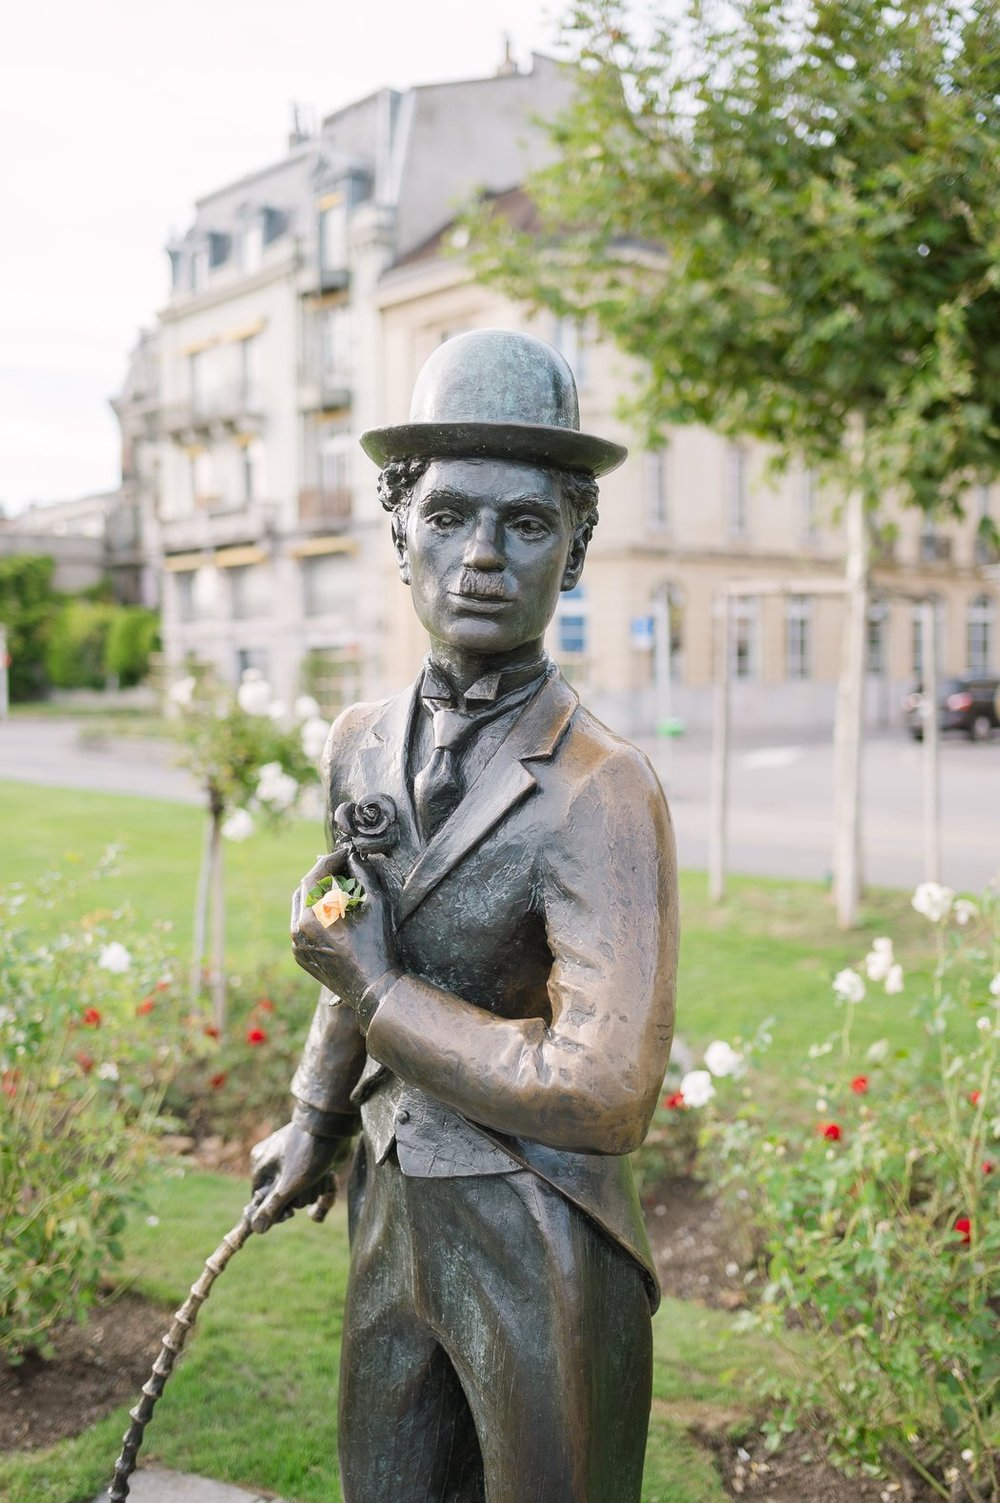 A statue of Charlie Chaplin near the lakeside promenade at his home in Switzerland.